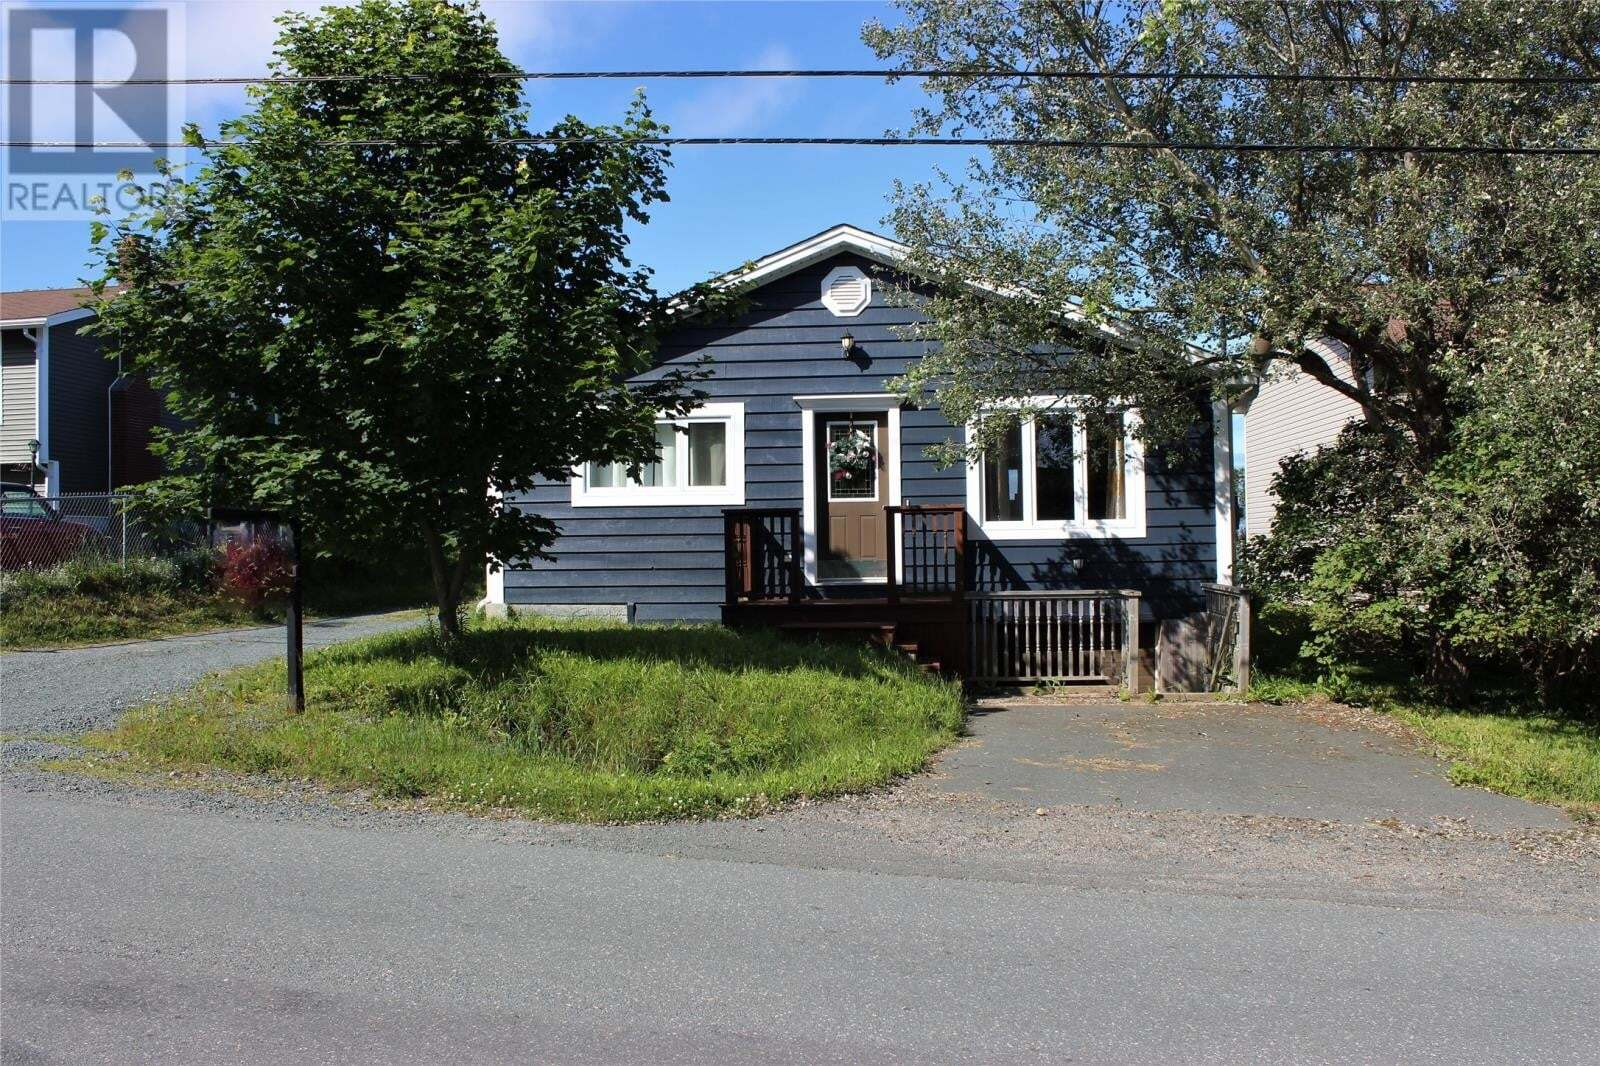 House for sale at 36 Scotts Rd South Conception Bay South Newfoundland - MLS: 1211433